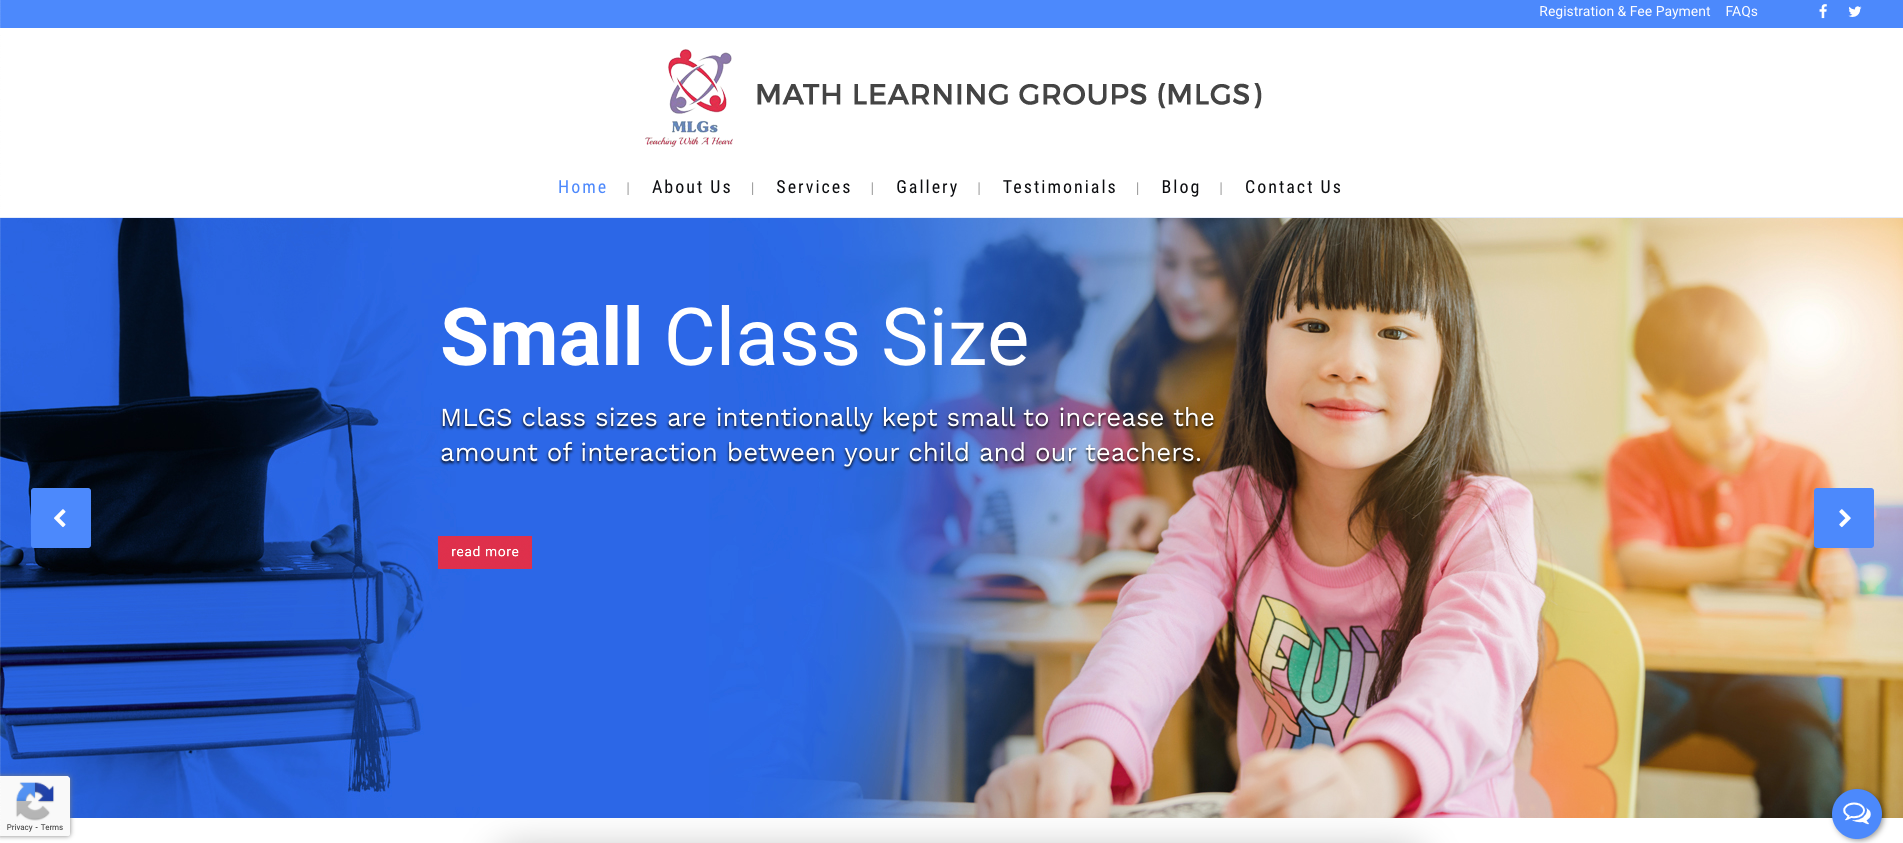 Math Learning Groups (MLGS) Primary School Tuition